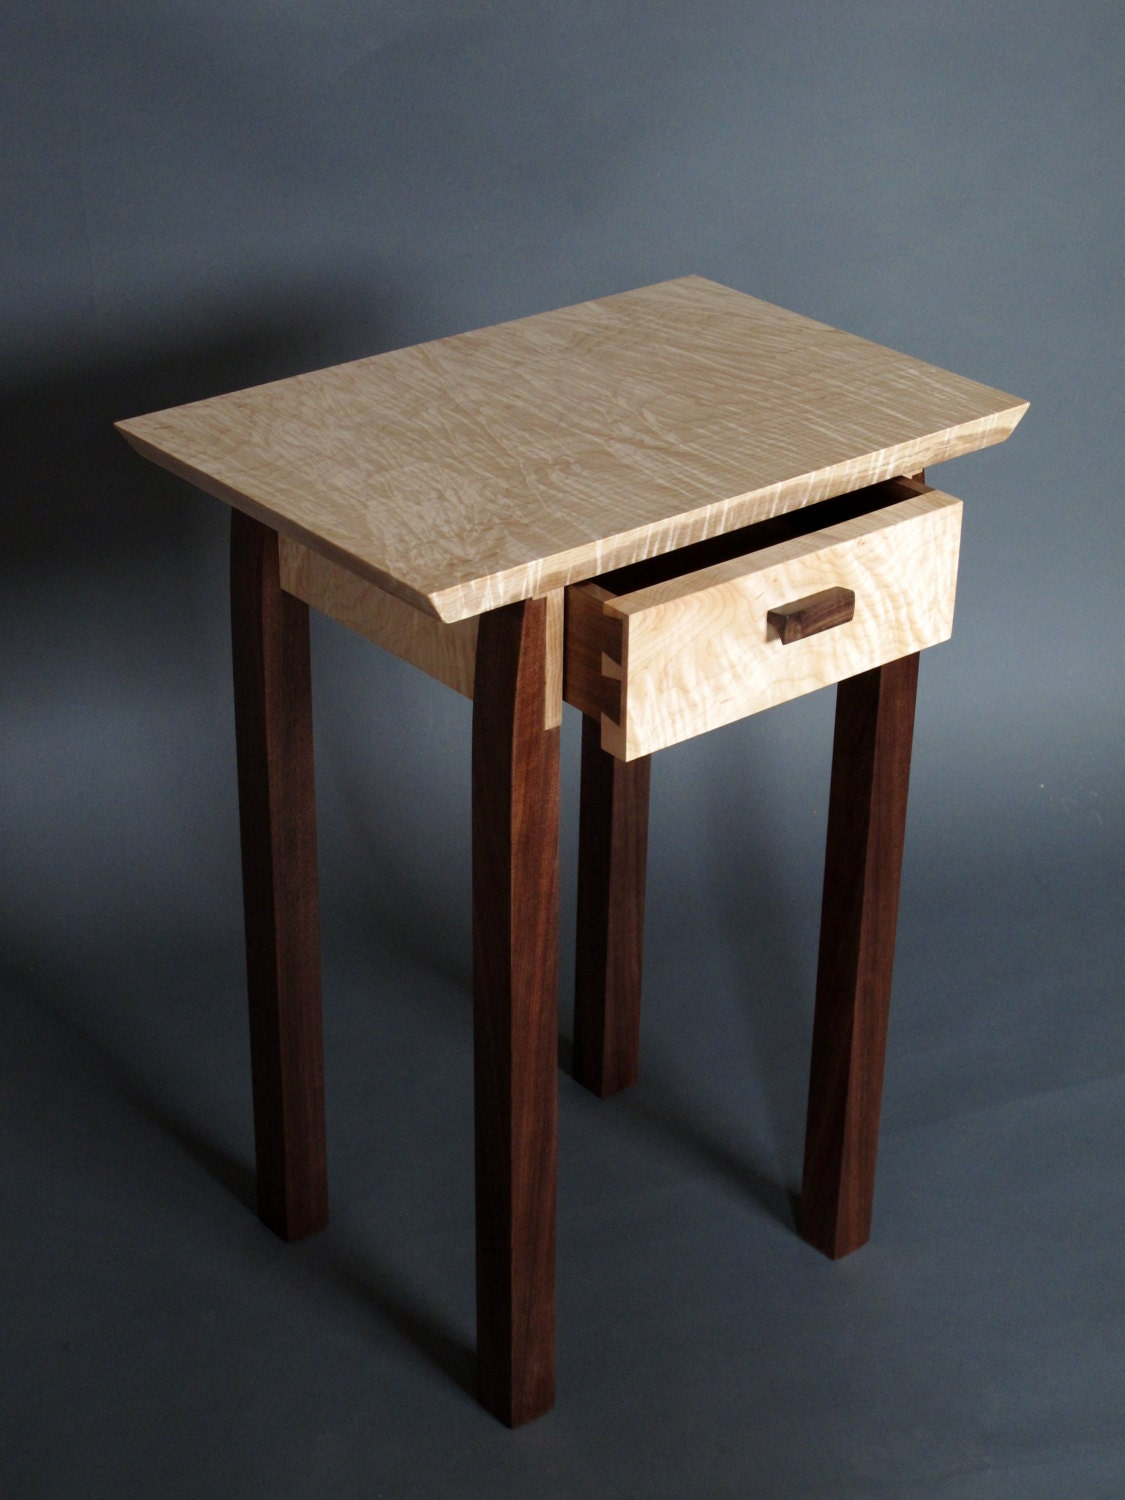 Small Wooden Tables ~ Bed side table with drawer narrow wooden contemporary